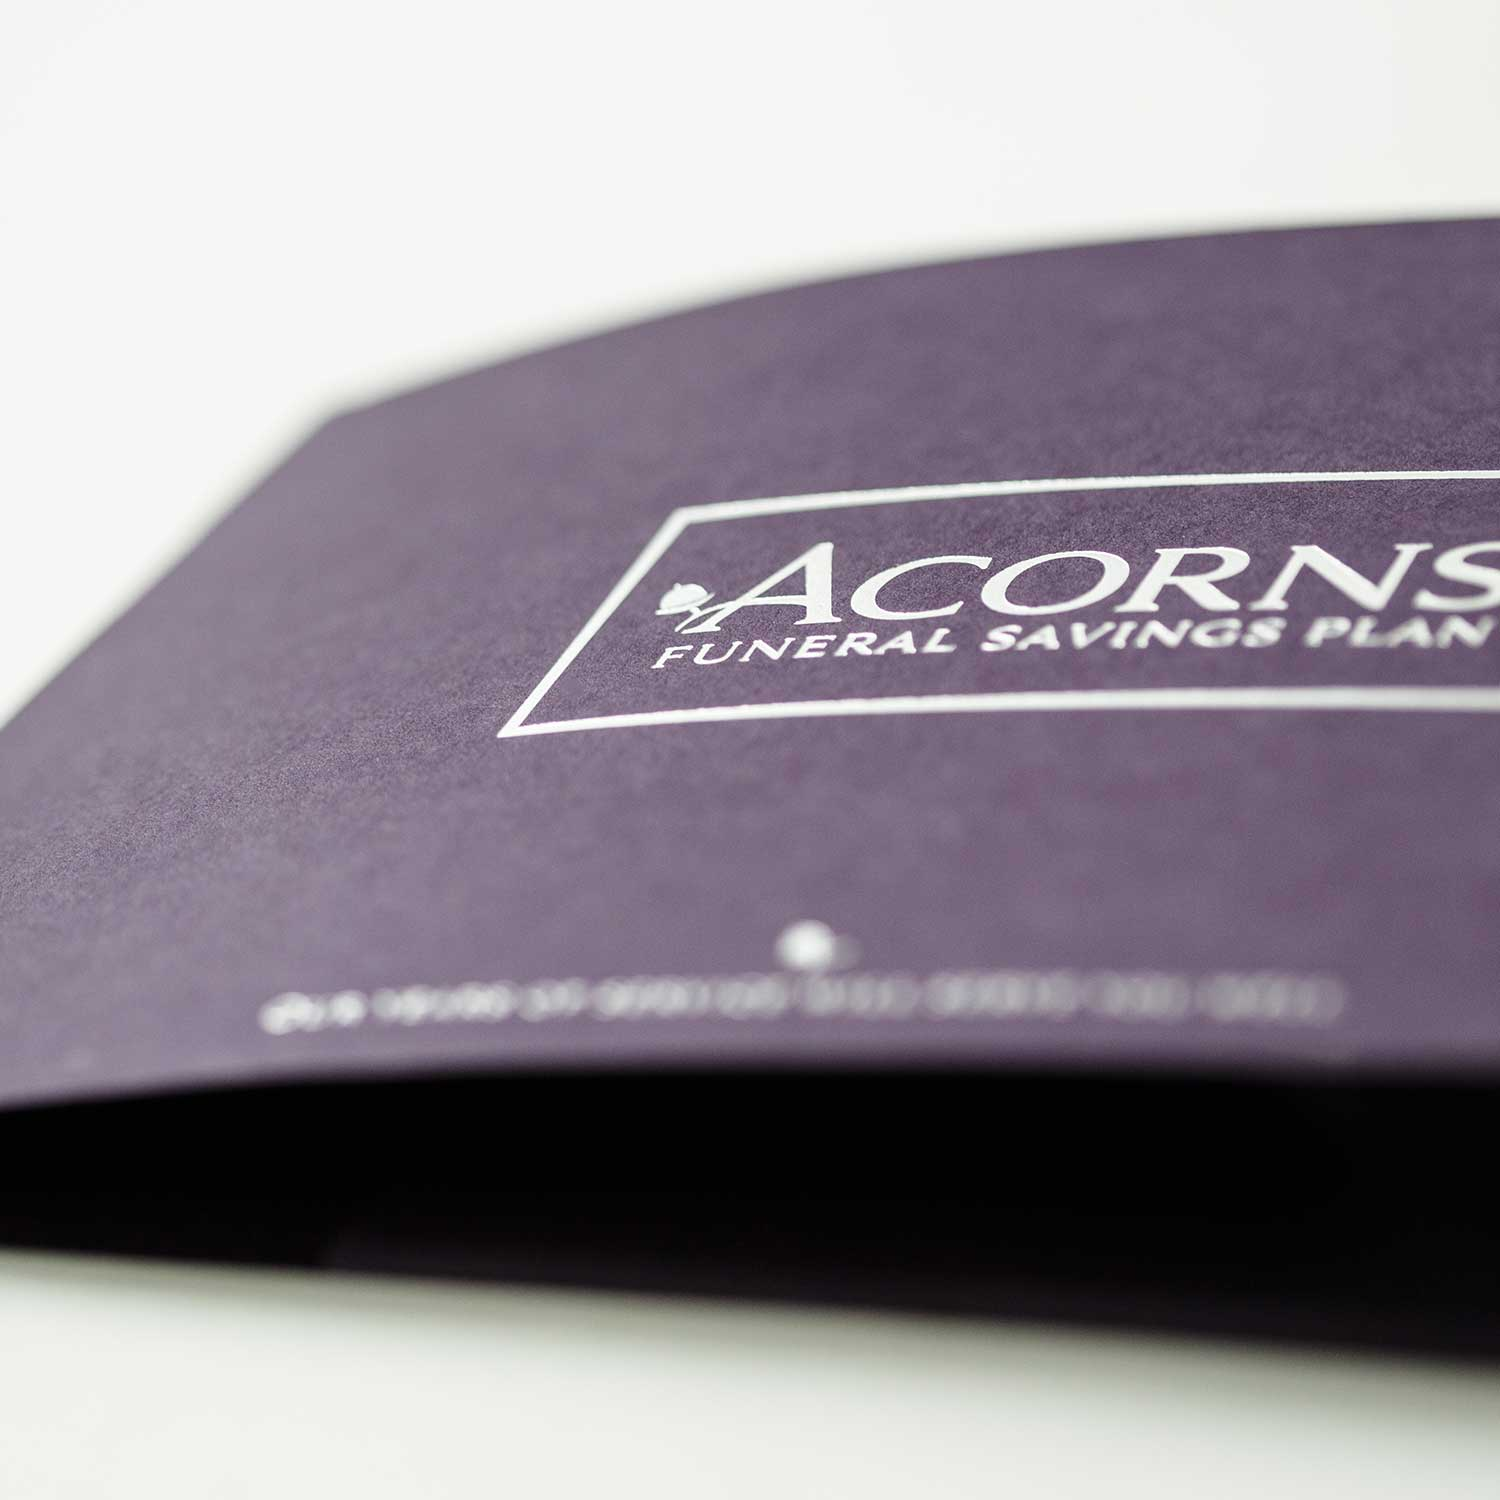 Print design example for funeral industry marketing